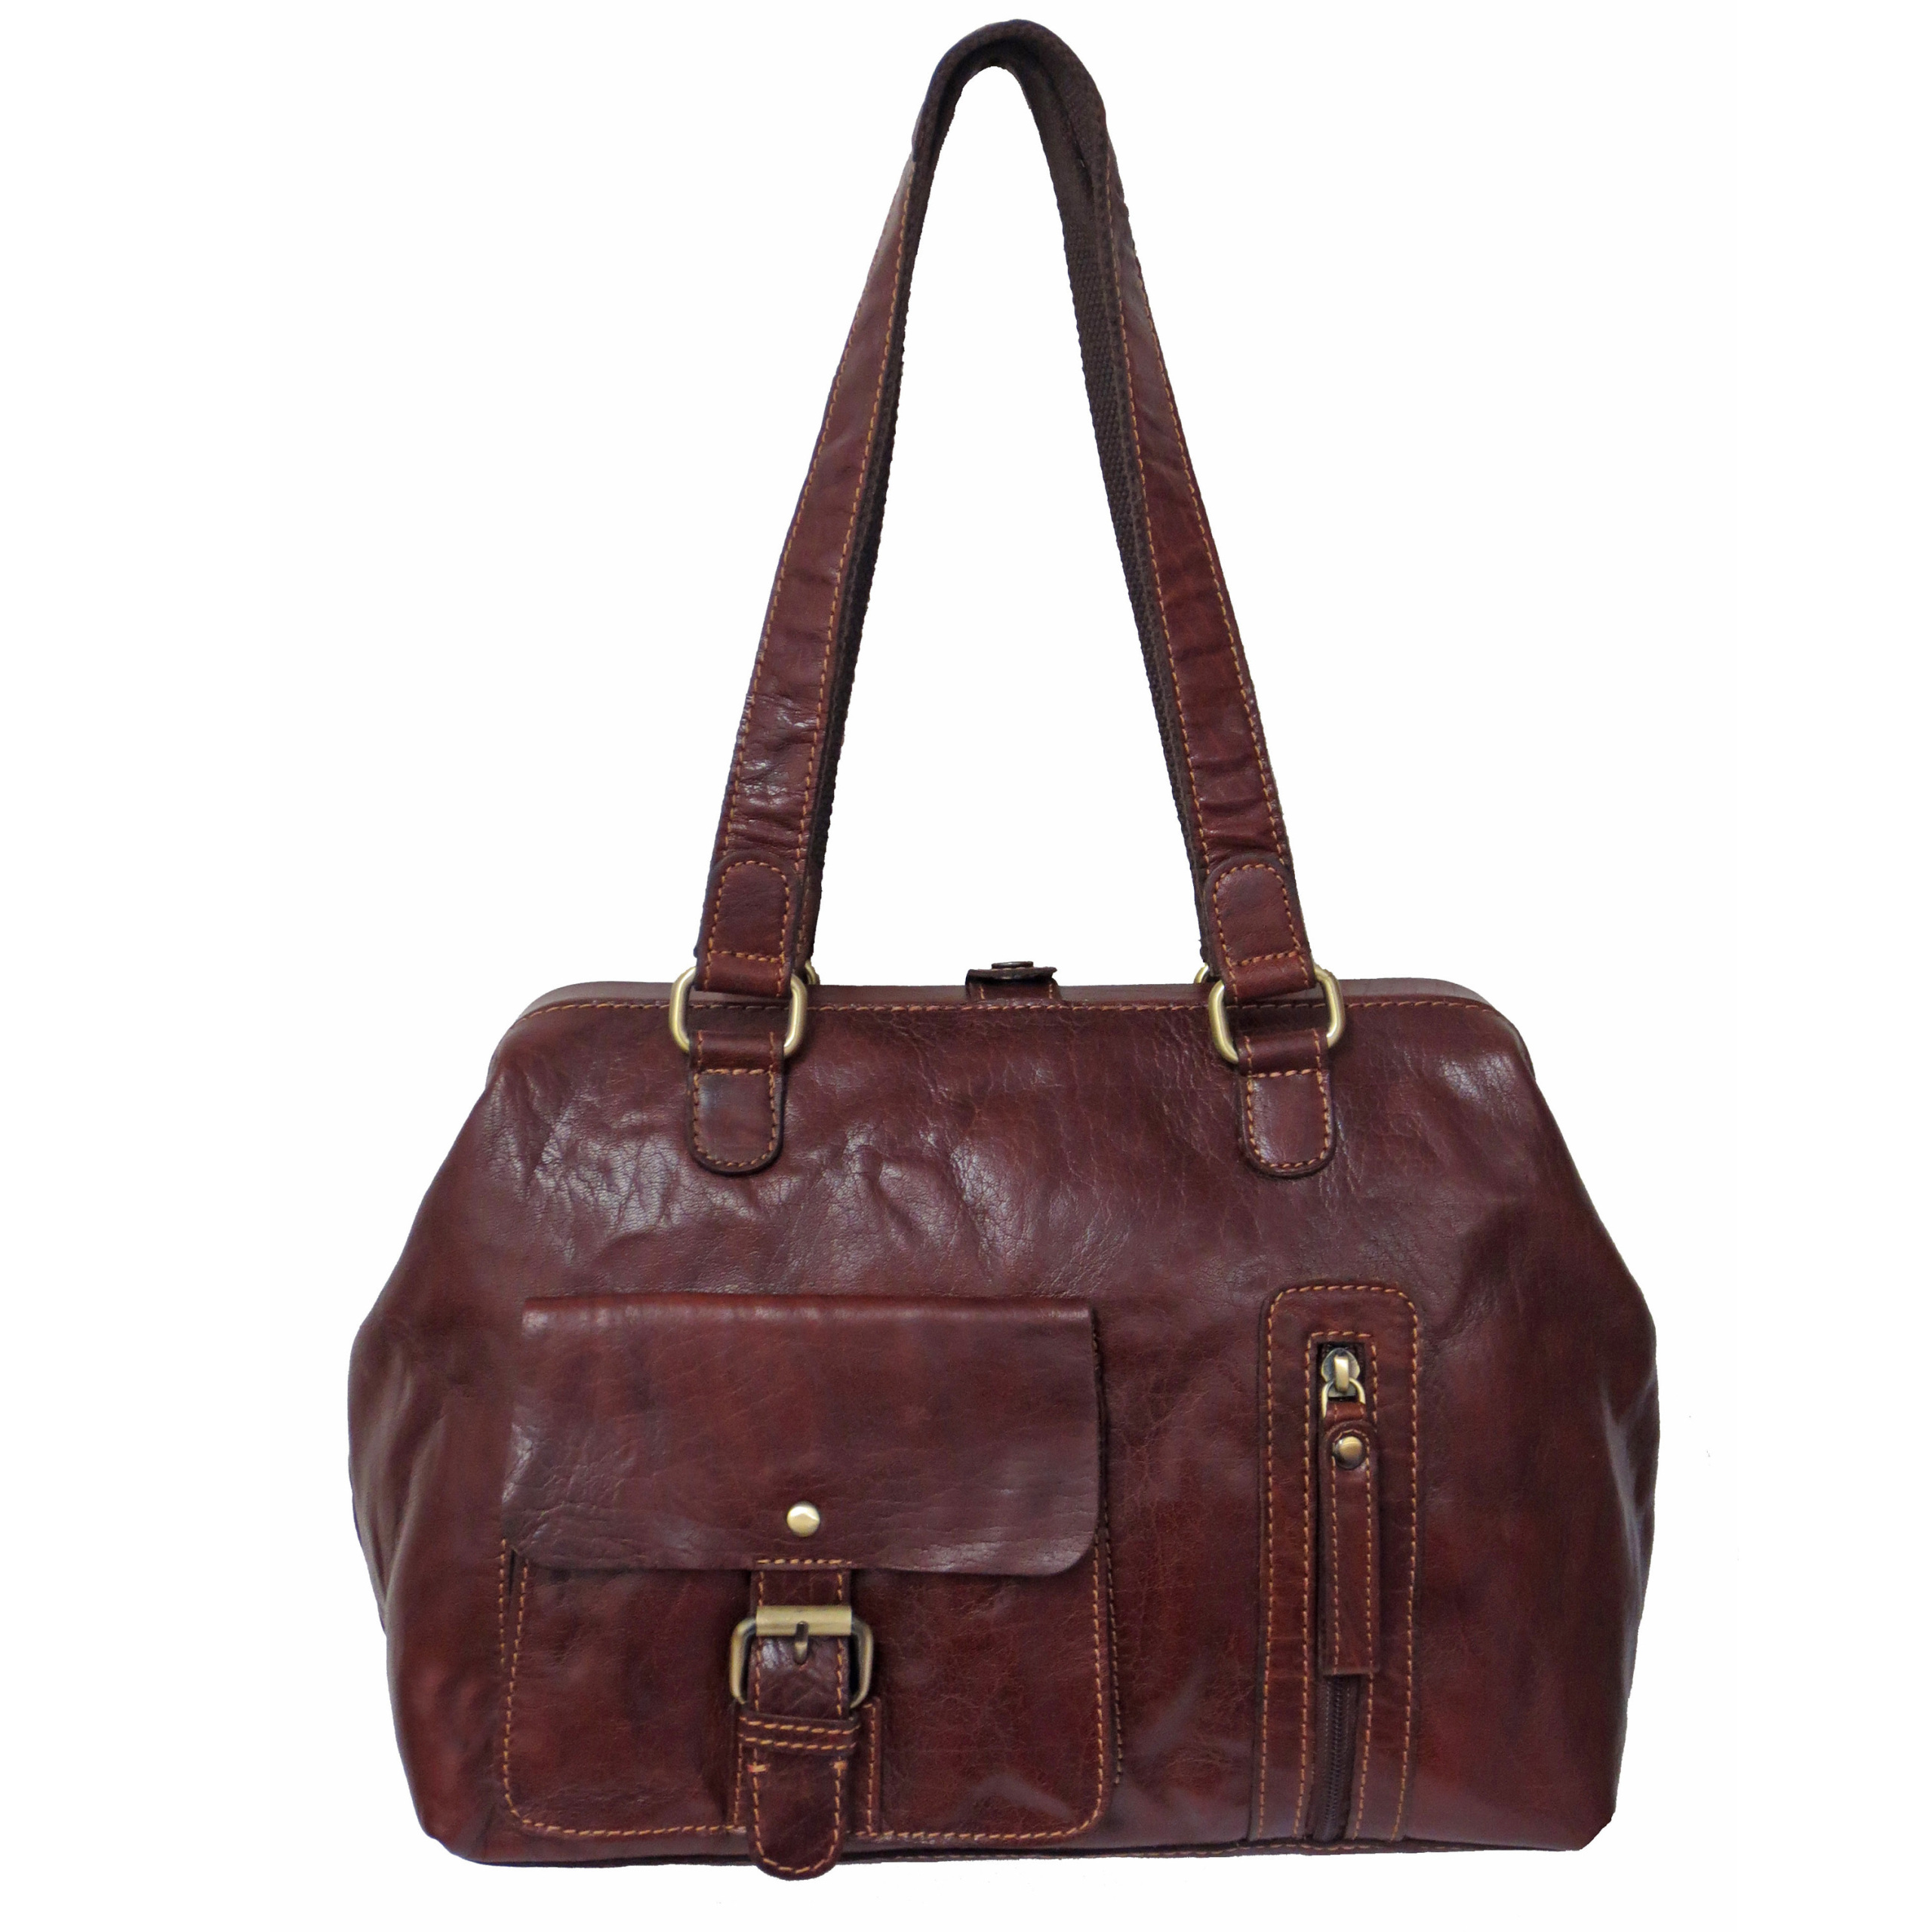 4fc3133bb9 Rowallan Women s Cognac Brown Leather Shoulder Bag